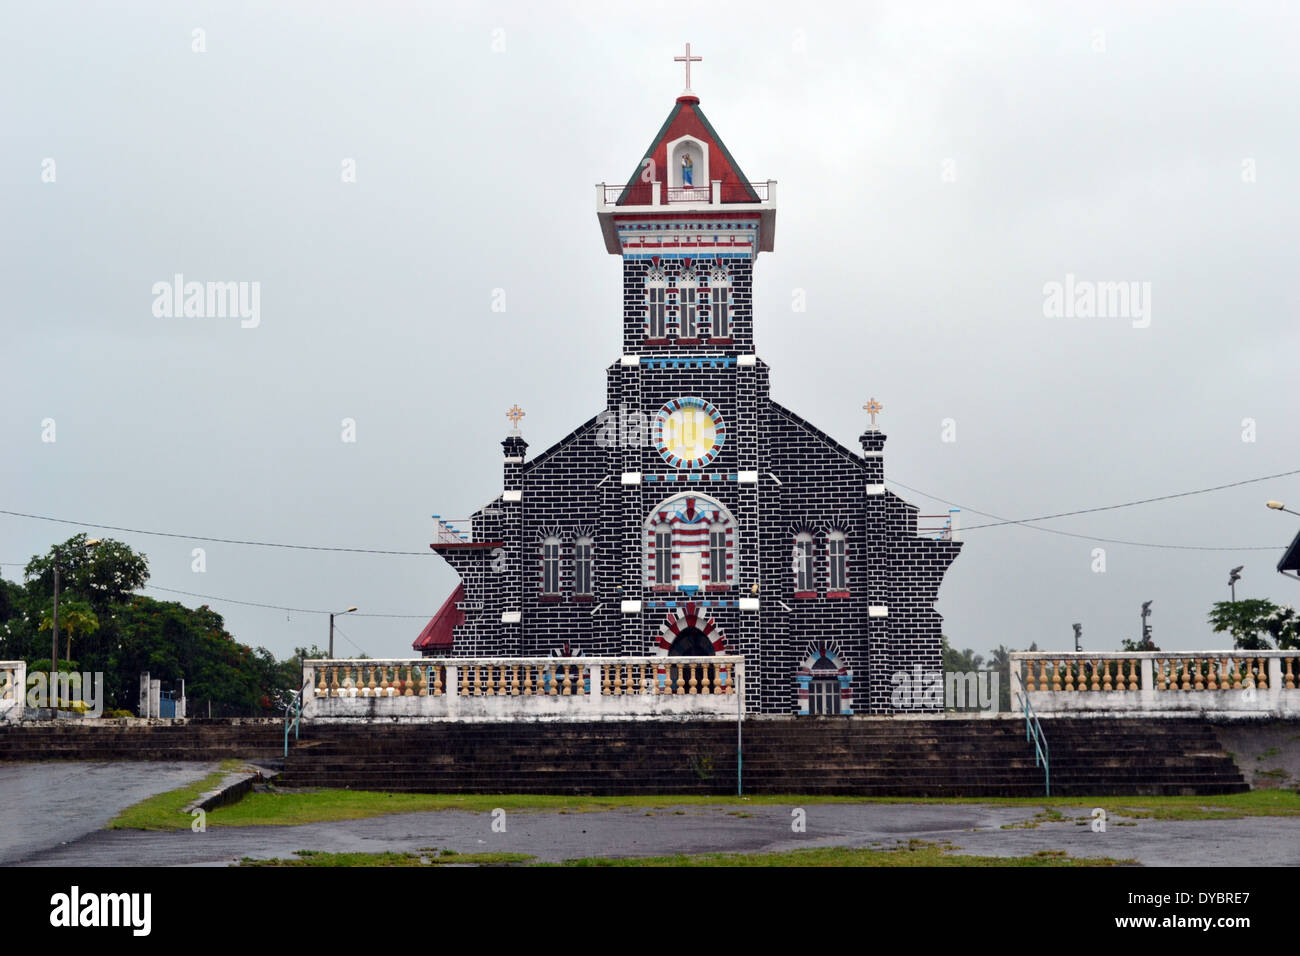 Church of Malaefoou in the district of Mua, Wallis Island, Wallis and Futuna, Melanesia, South Pacific - Stock Image